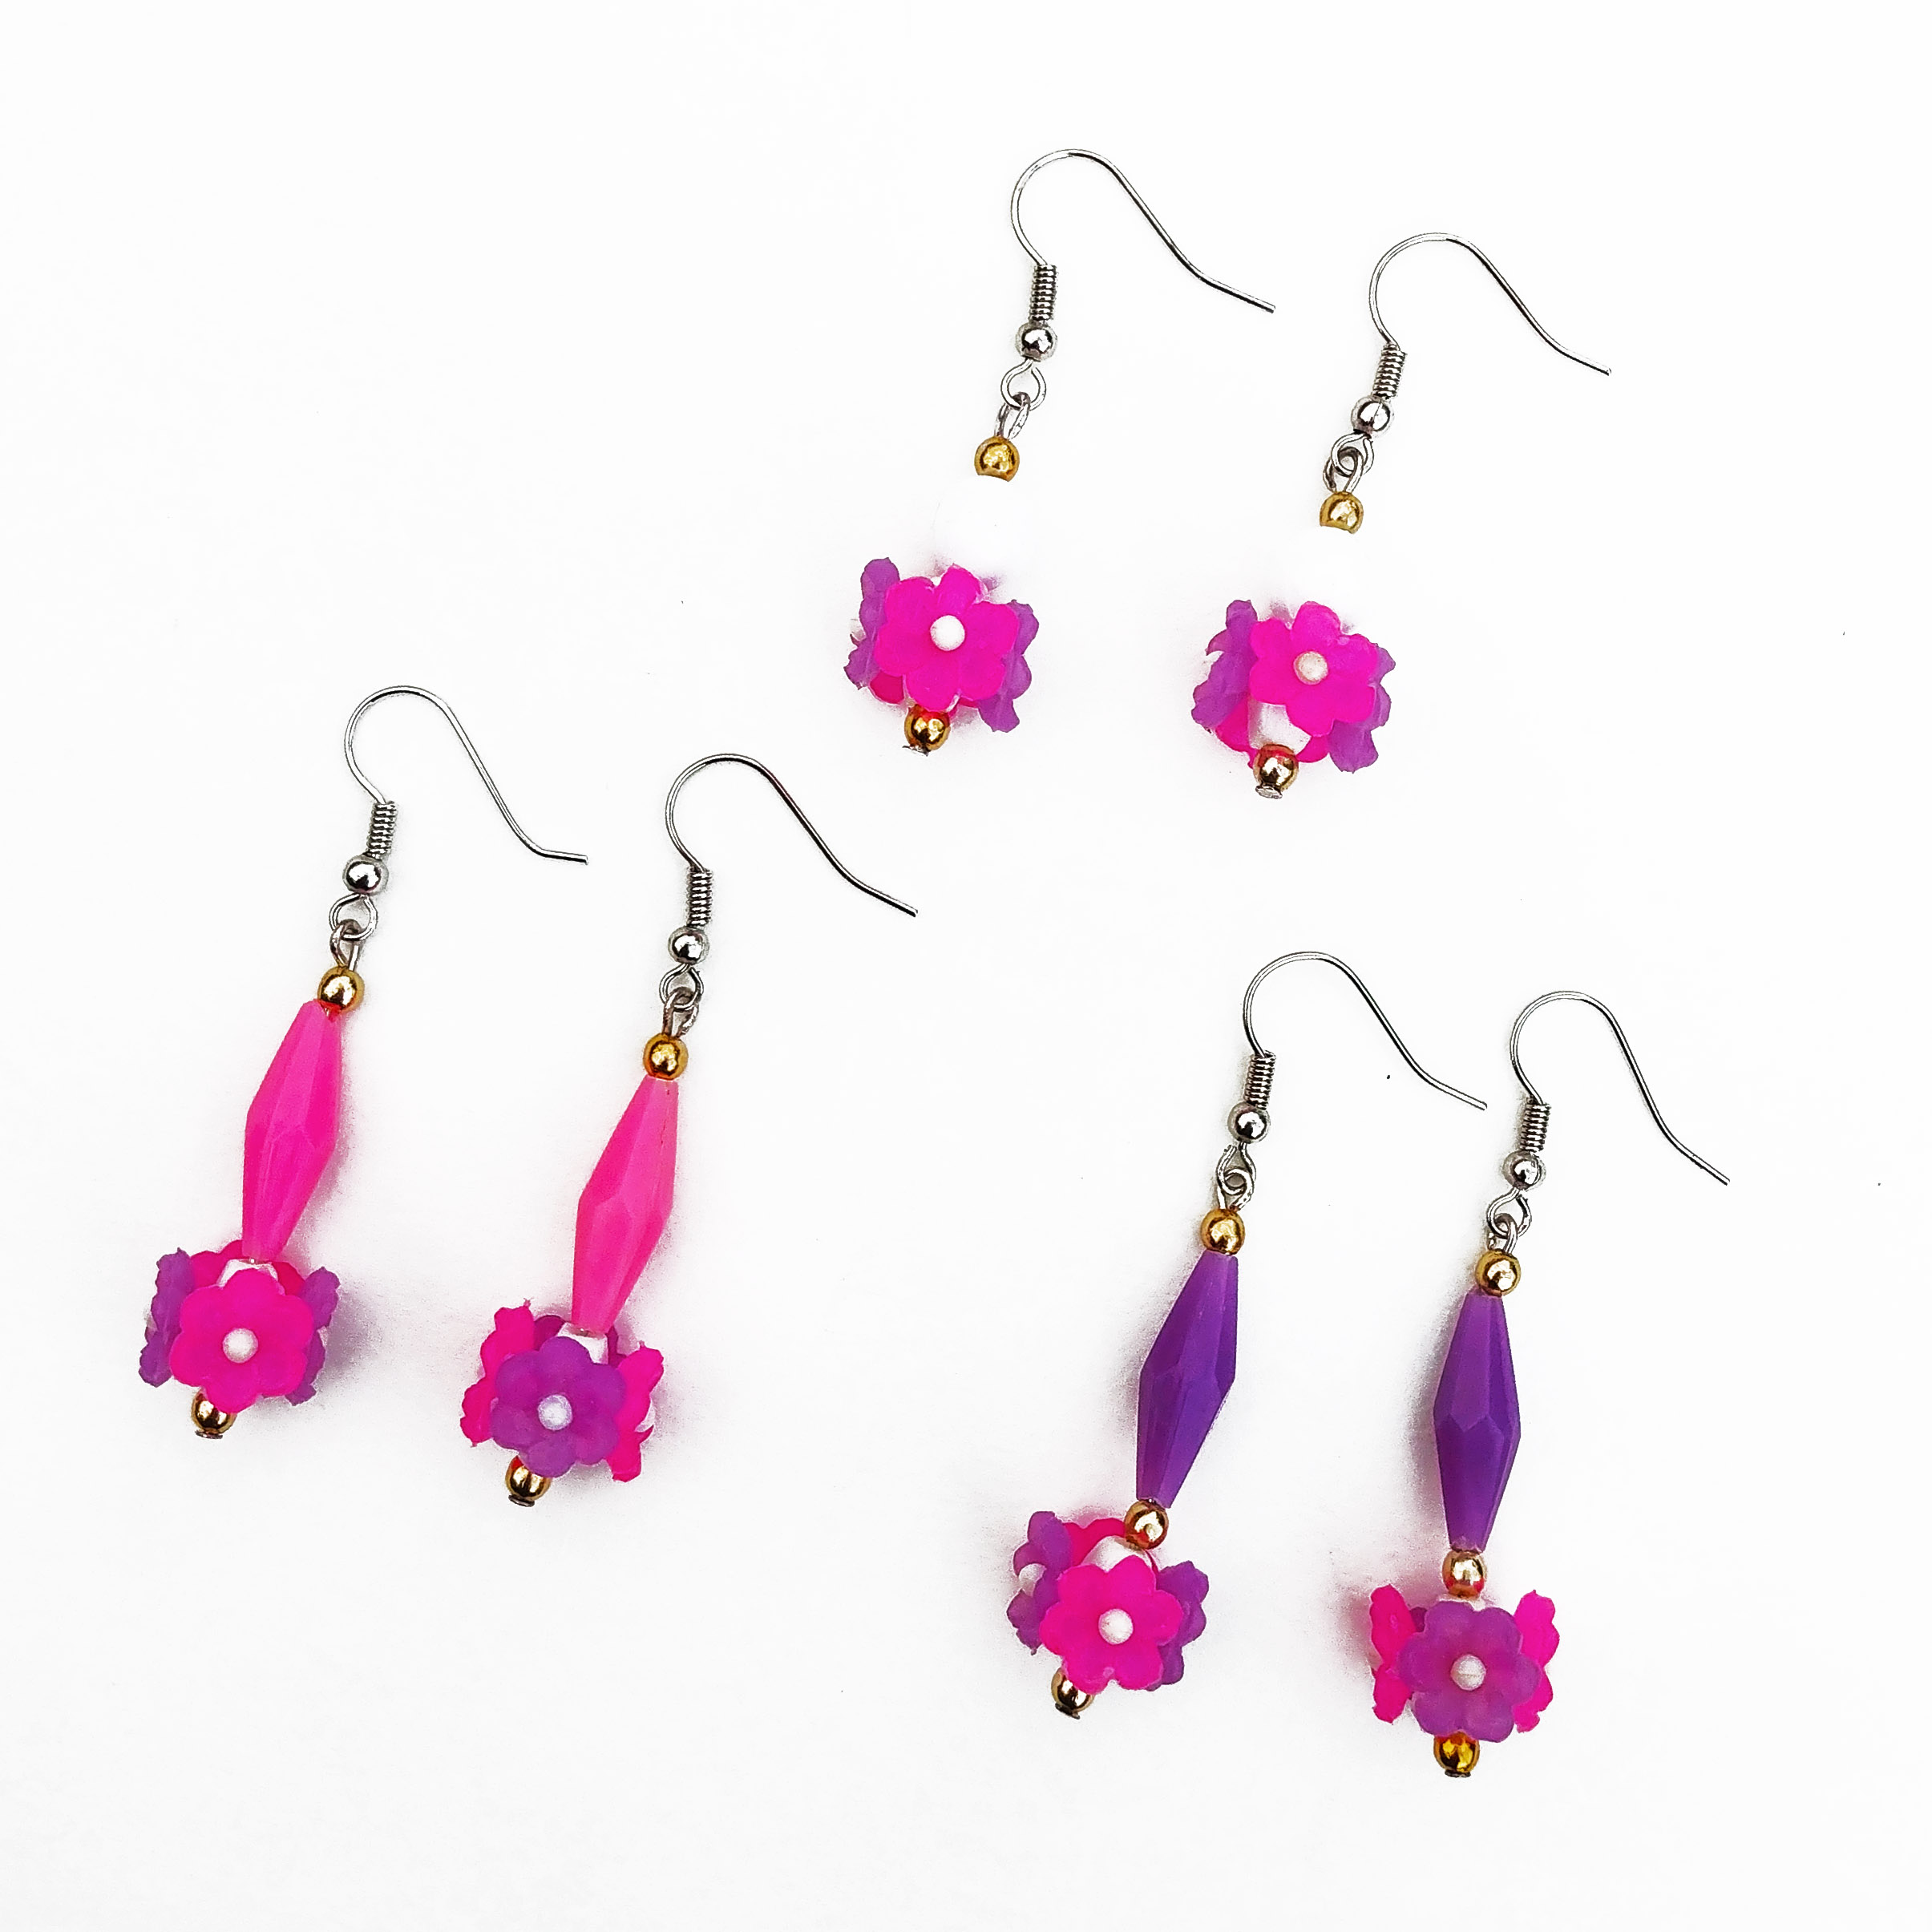 Bright colored earrings made from 1960's beads! Available only at the Leslieville Arts Market!